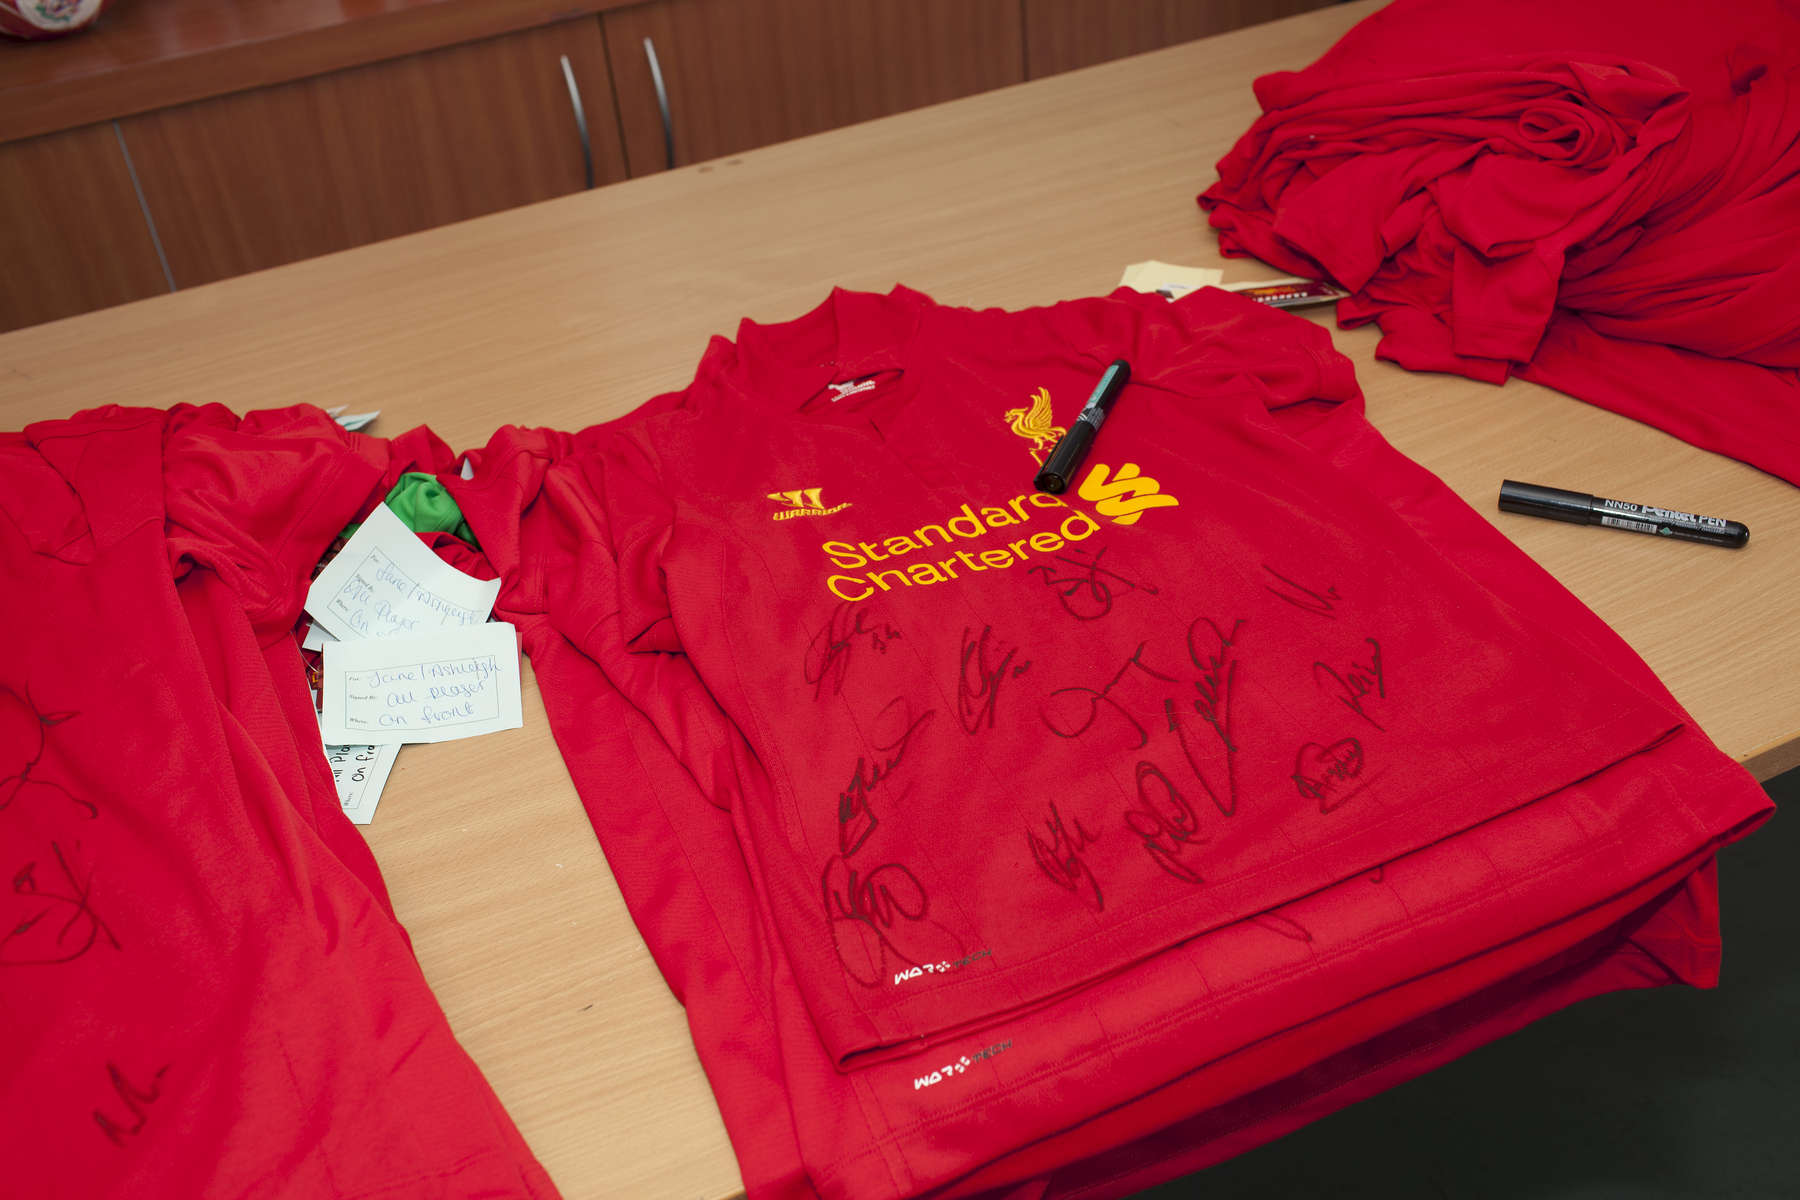 Signed Liverpool FC football shirts in the canteen at Melwood.Melwood is the Liverpool FC training ground, located in the West Derby area of Liverpool. It is seperate from the Liverpool Academy, which is based in Kirkby.Melwood was redeveloped in the early 2000′s with large input from then-manager Gerard Houllier and now features some of the best facilities in Europe. It has been the club's training ground since the fifties and was previously transformed into a top class facility by Bill Shankly.Facilities include sythetic pitches, rehabilitation rooms, press and meeting rooms, gymnasium, swimming pool, restaurant and recreational facilities.